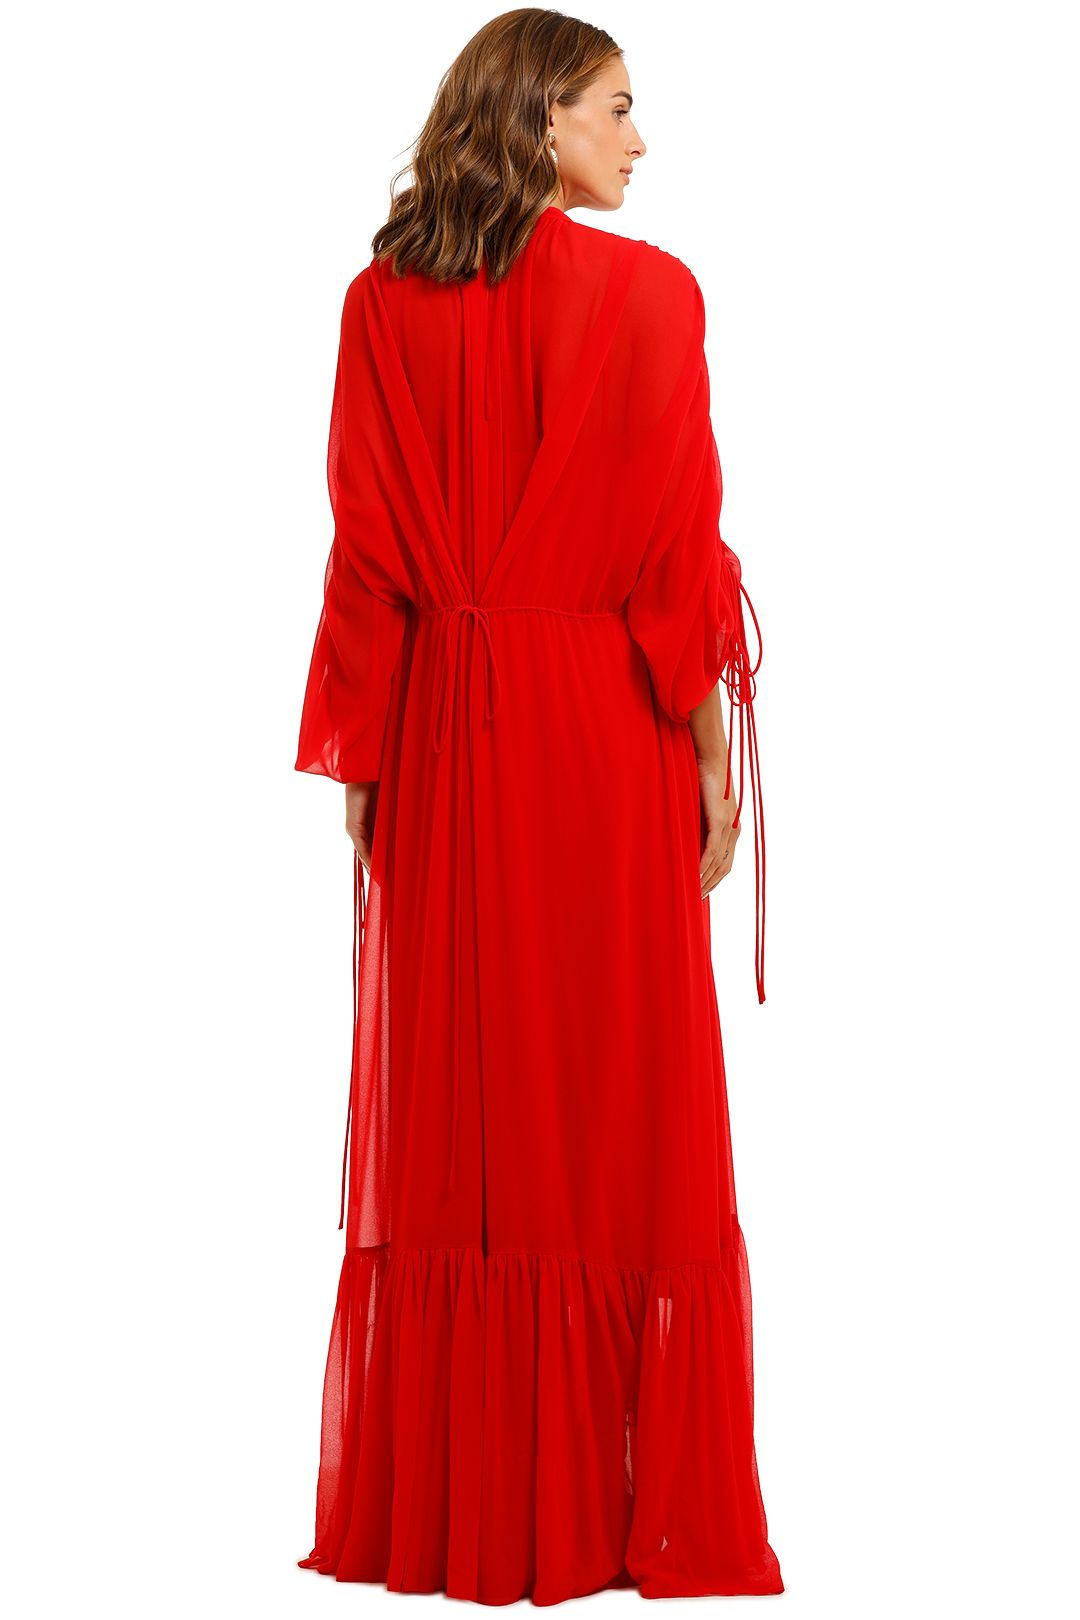 Camilla and Marc Catalina Maxi Dress Relaxed Fit